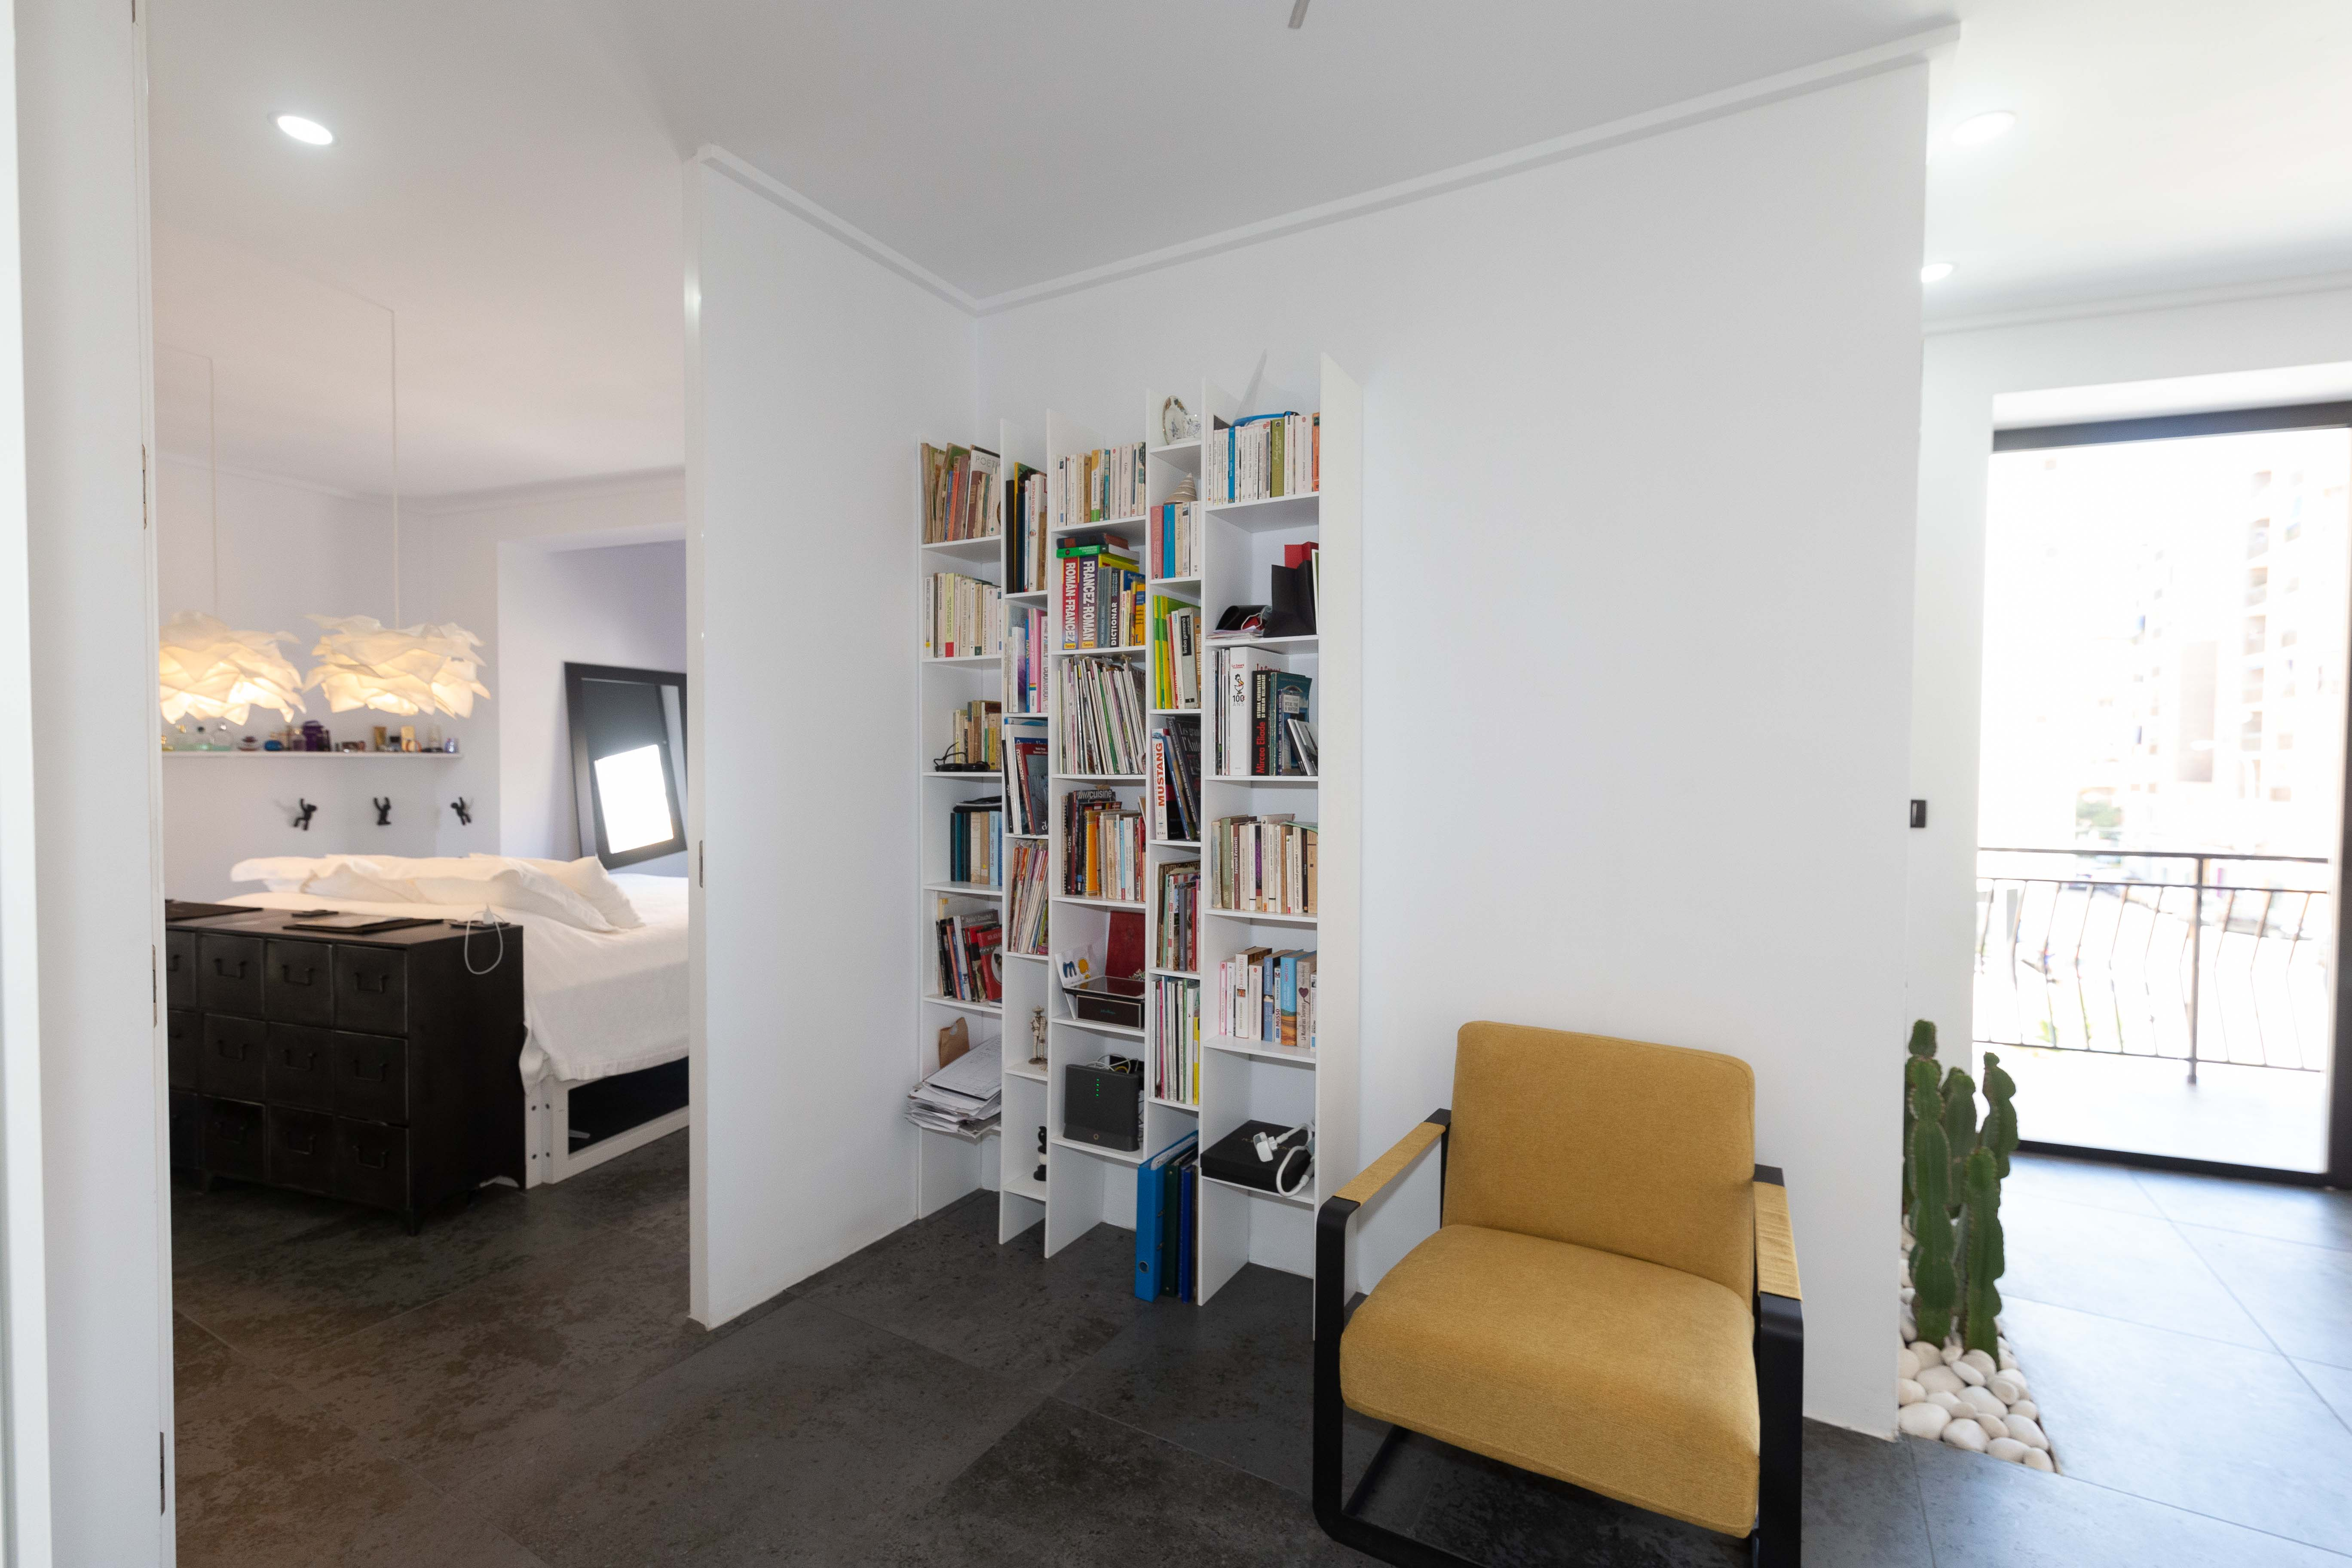 Photogallery - 17 - Vives Pons Homes